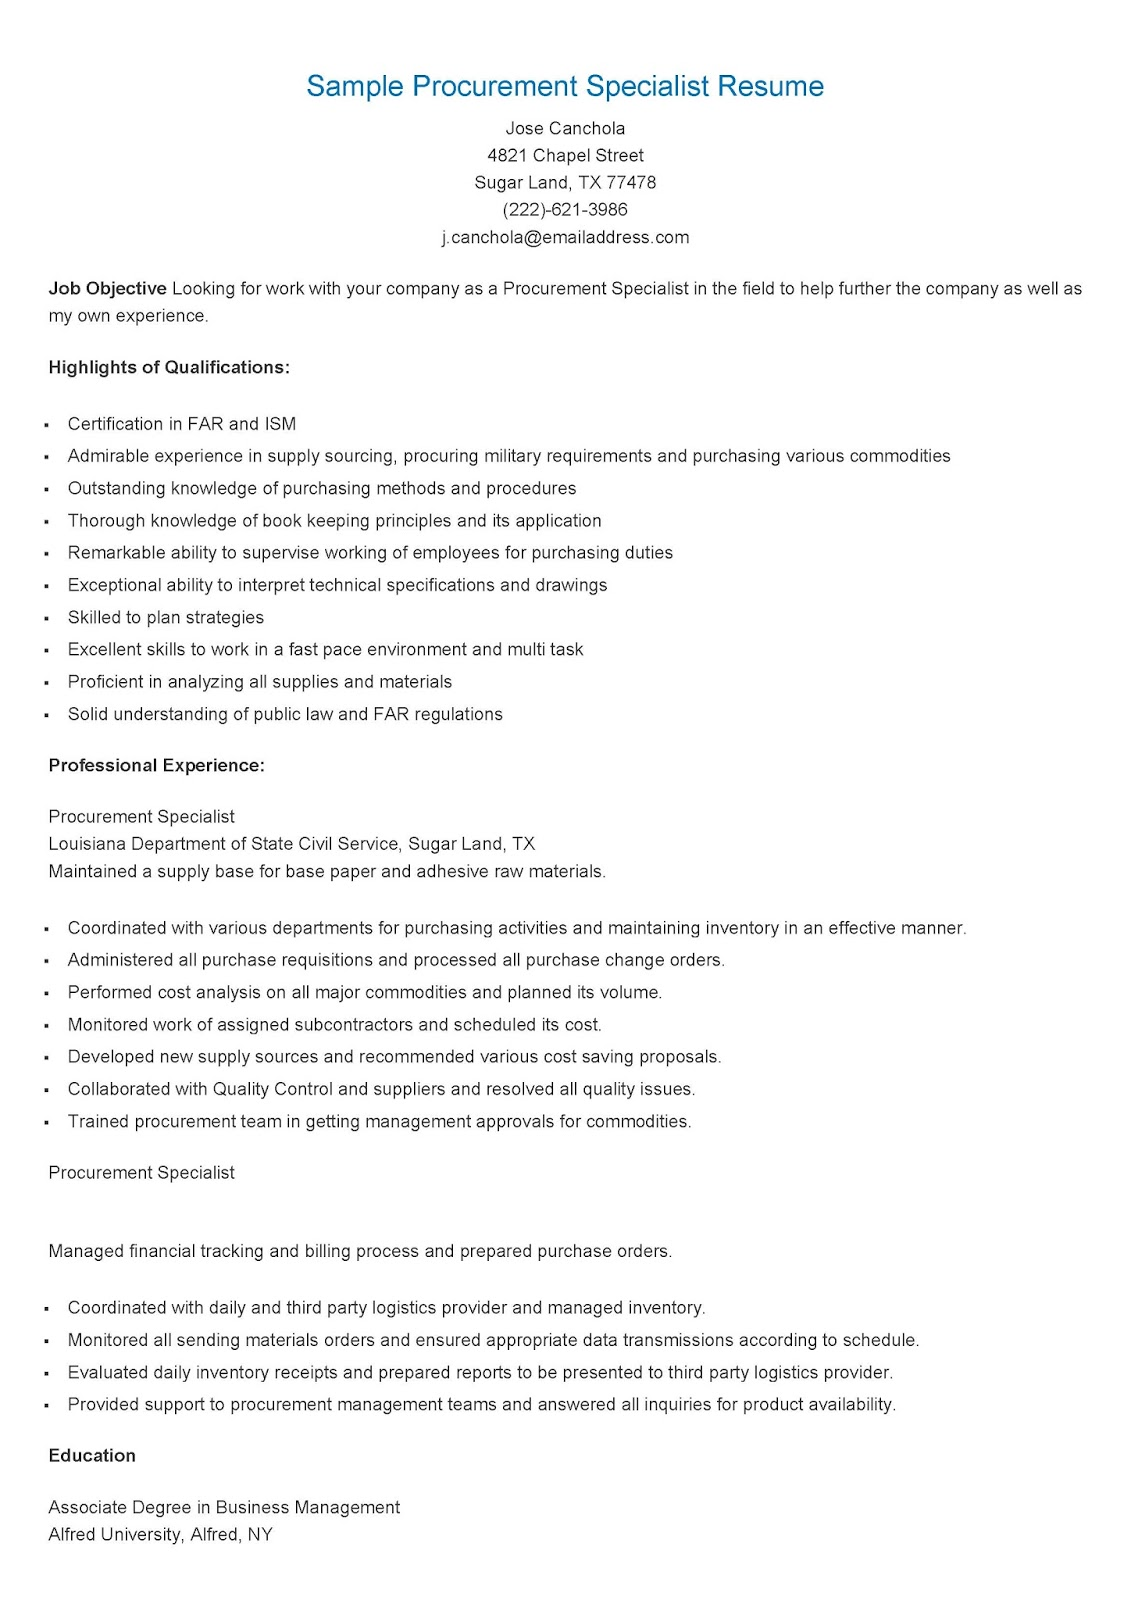 Sample Procurement Resume Resume Samples Sample Procurement Specialist Resume